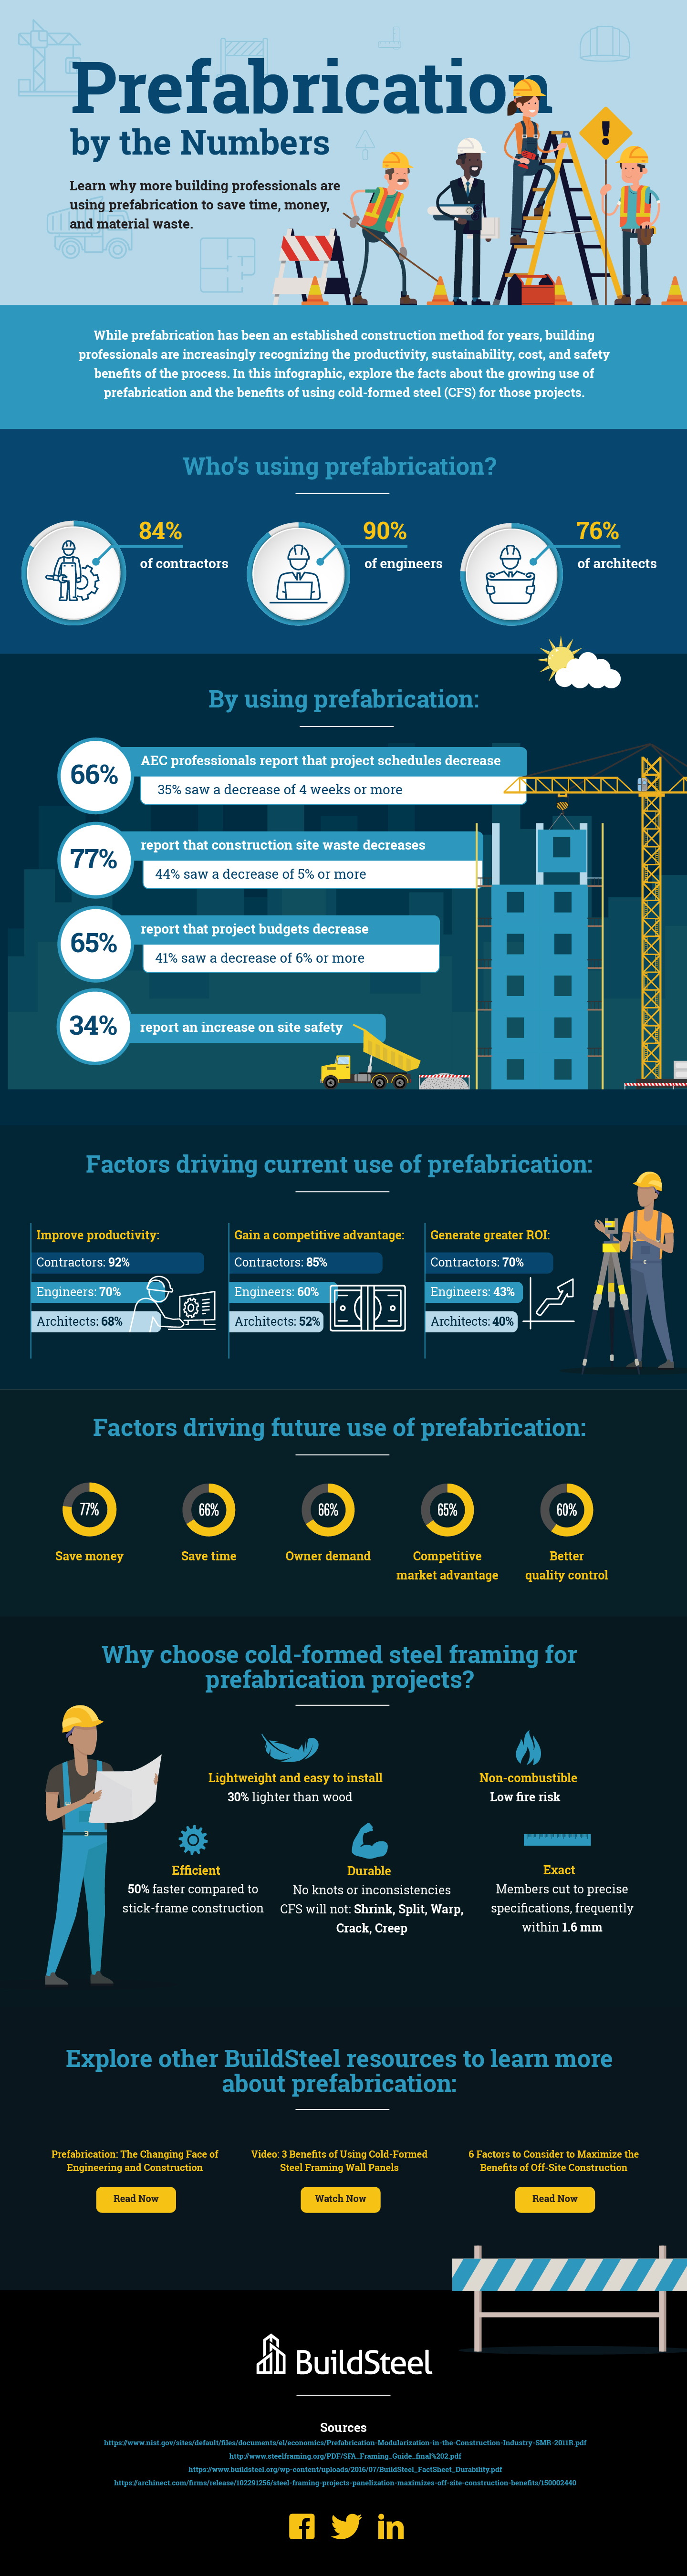 Infographic: Prefabrication by the Numbers